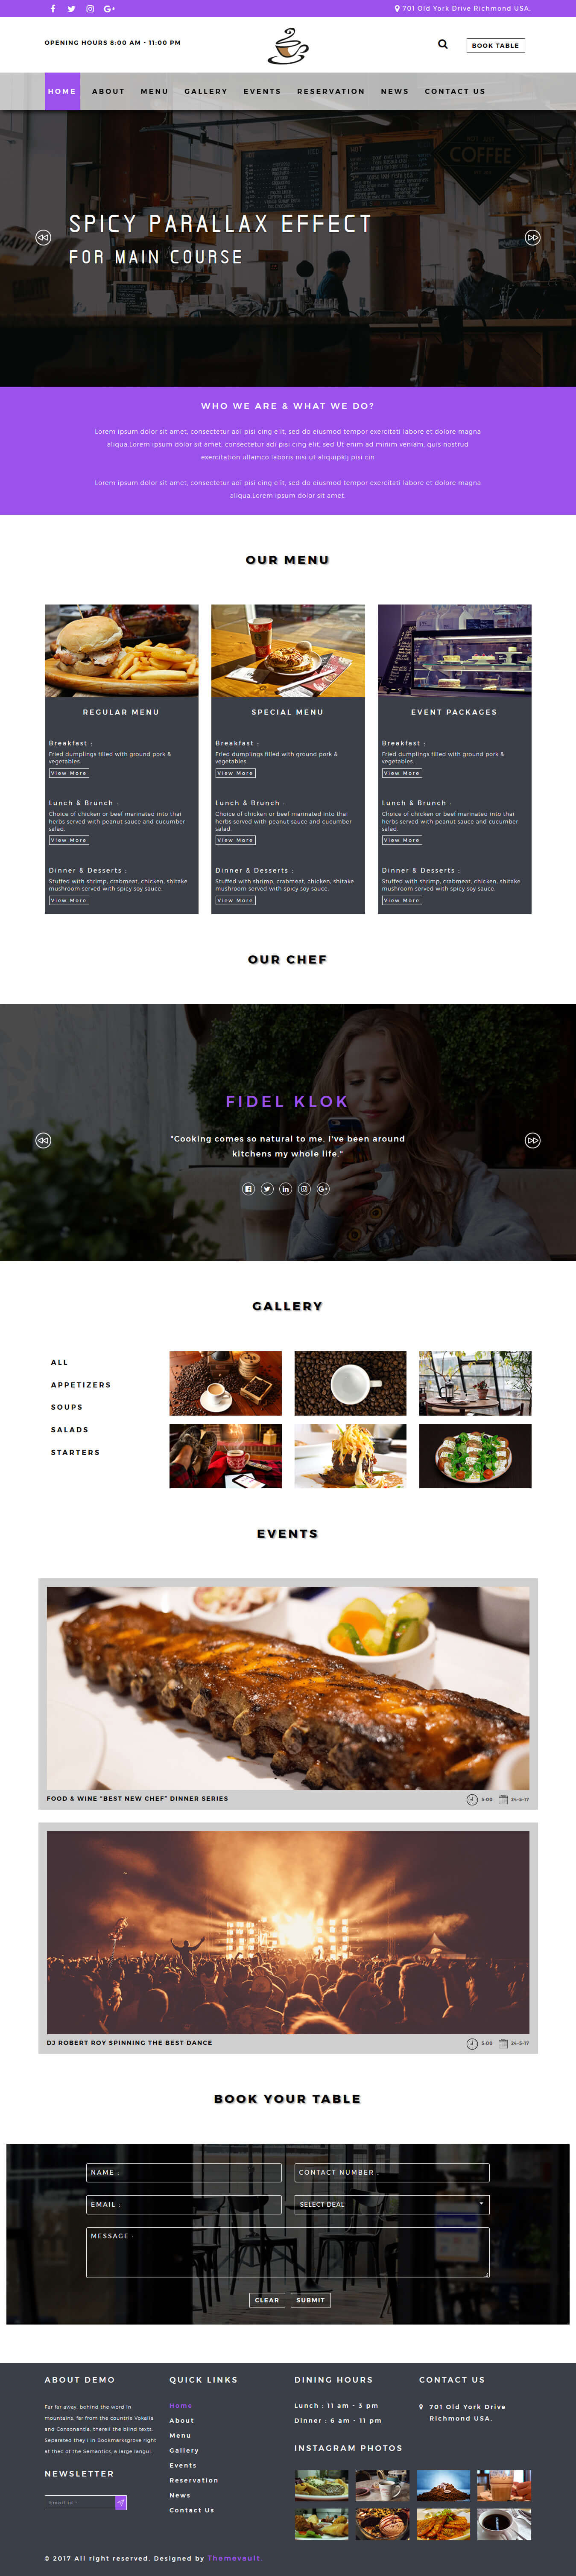 kafe responsive free coffee shop website template themevault. Black Bedroom Furniture Sets. Home Design Ideas